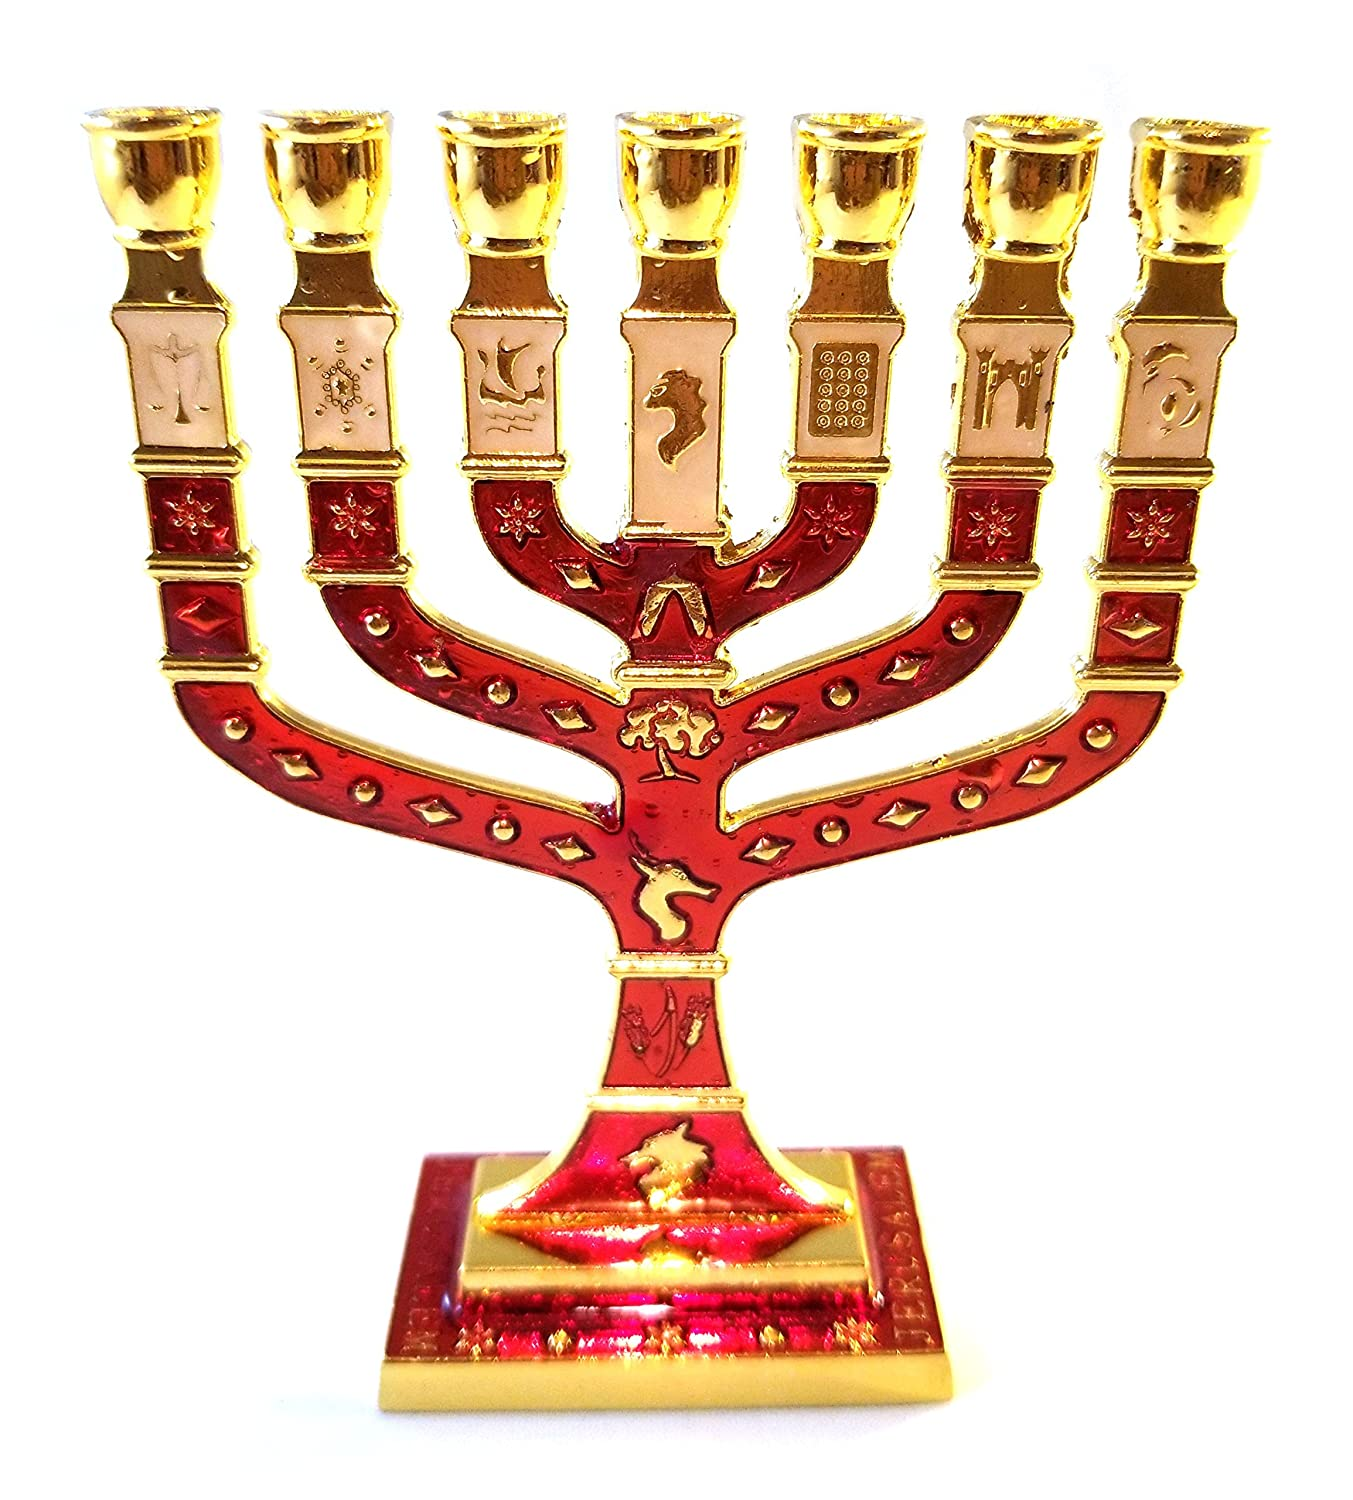 Miniature Crimson Enameled Jewish Menorah 7 Branch Bethlehem Designs